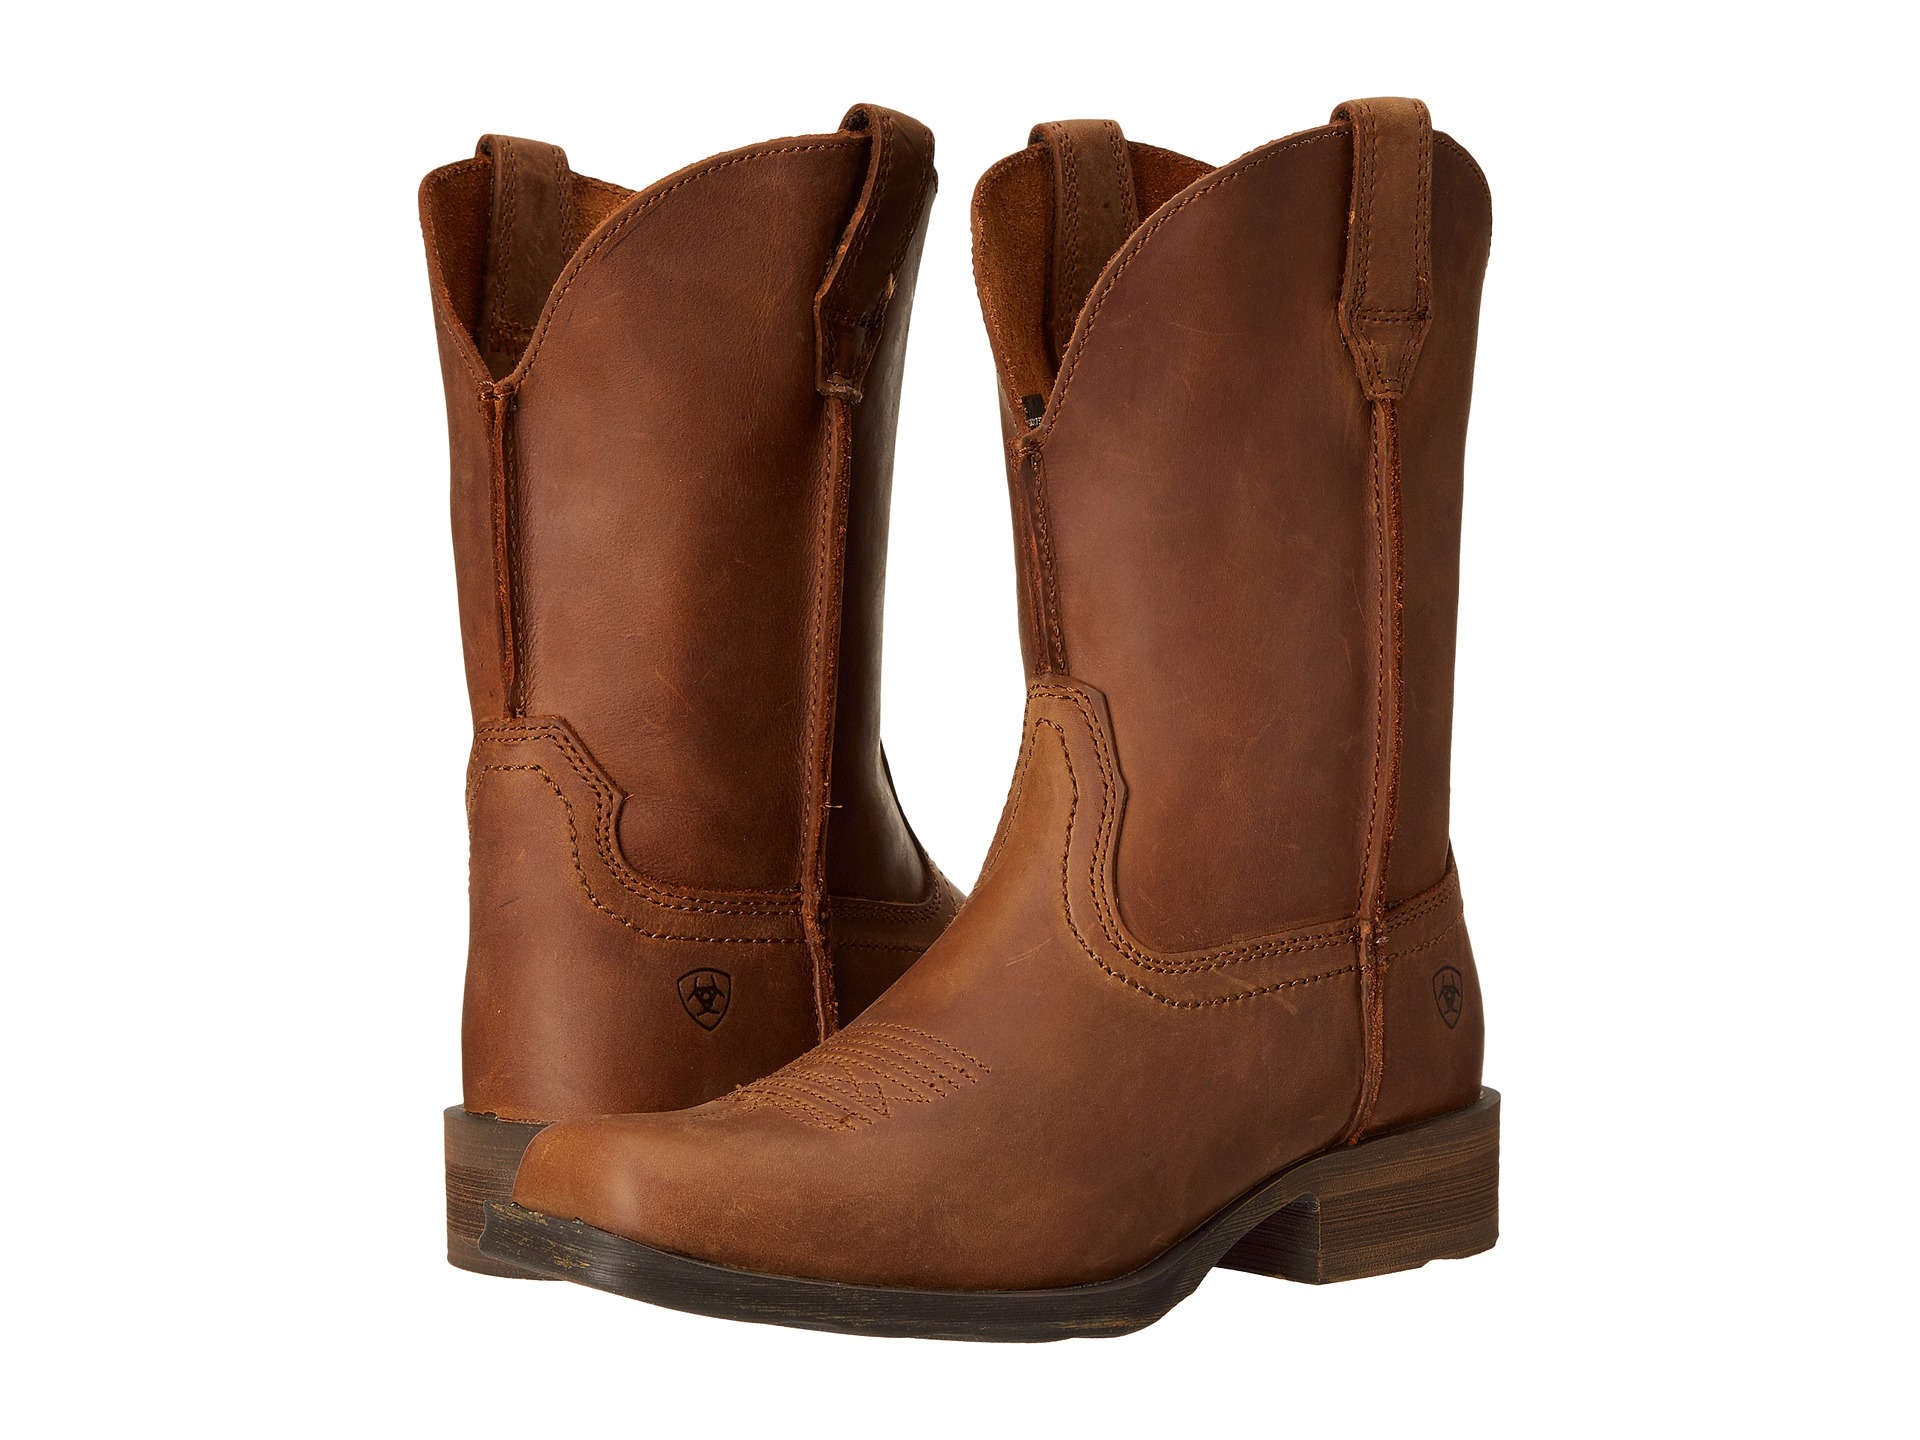 Ariat Ariat Rambler Shoes | Shipped Free at Zappos